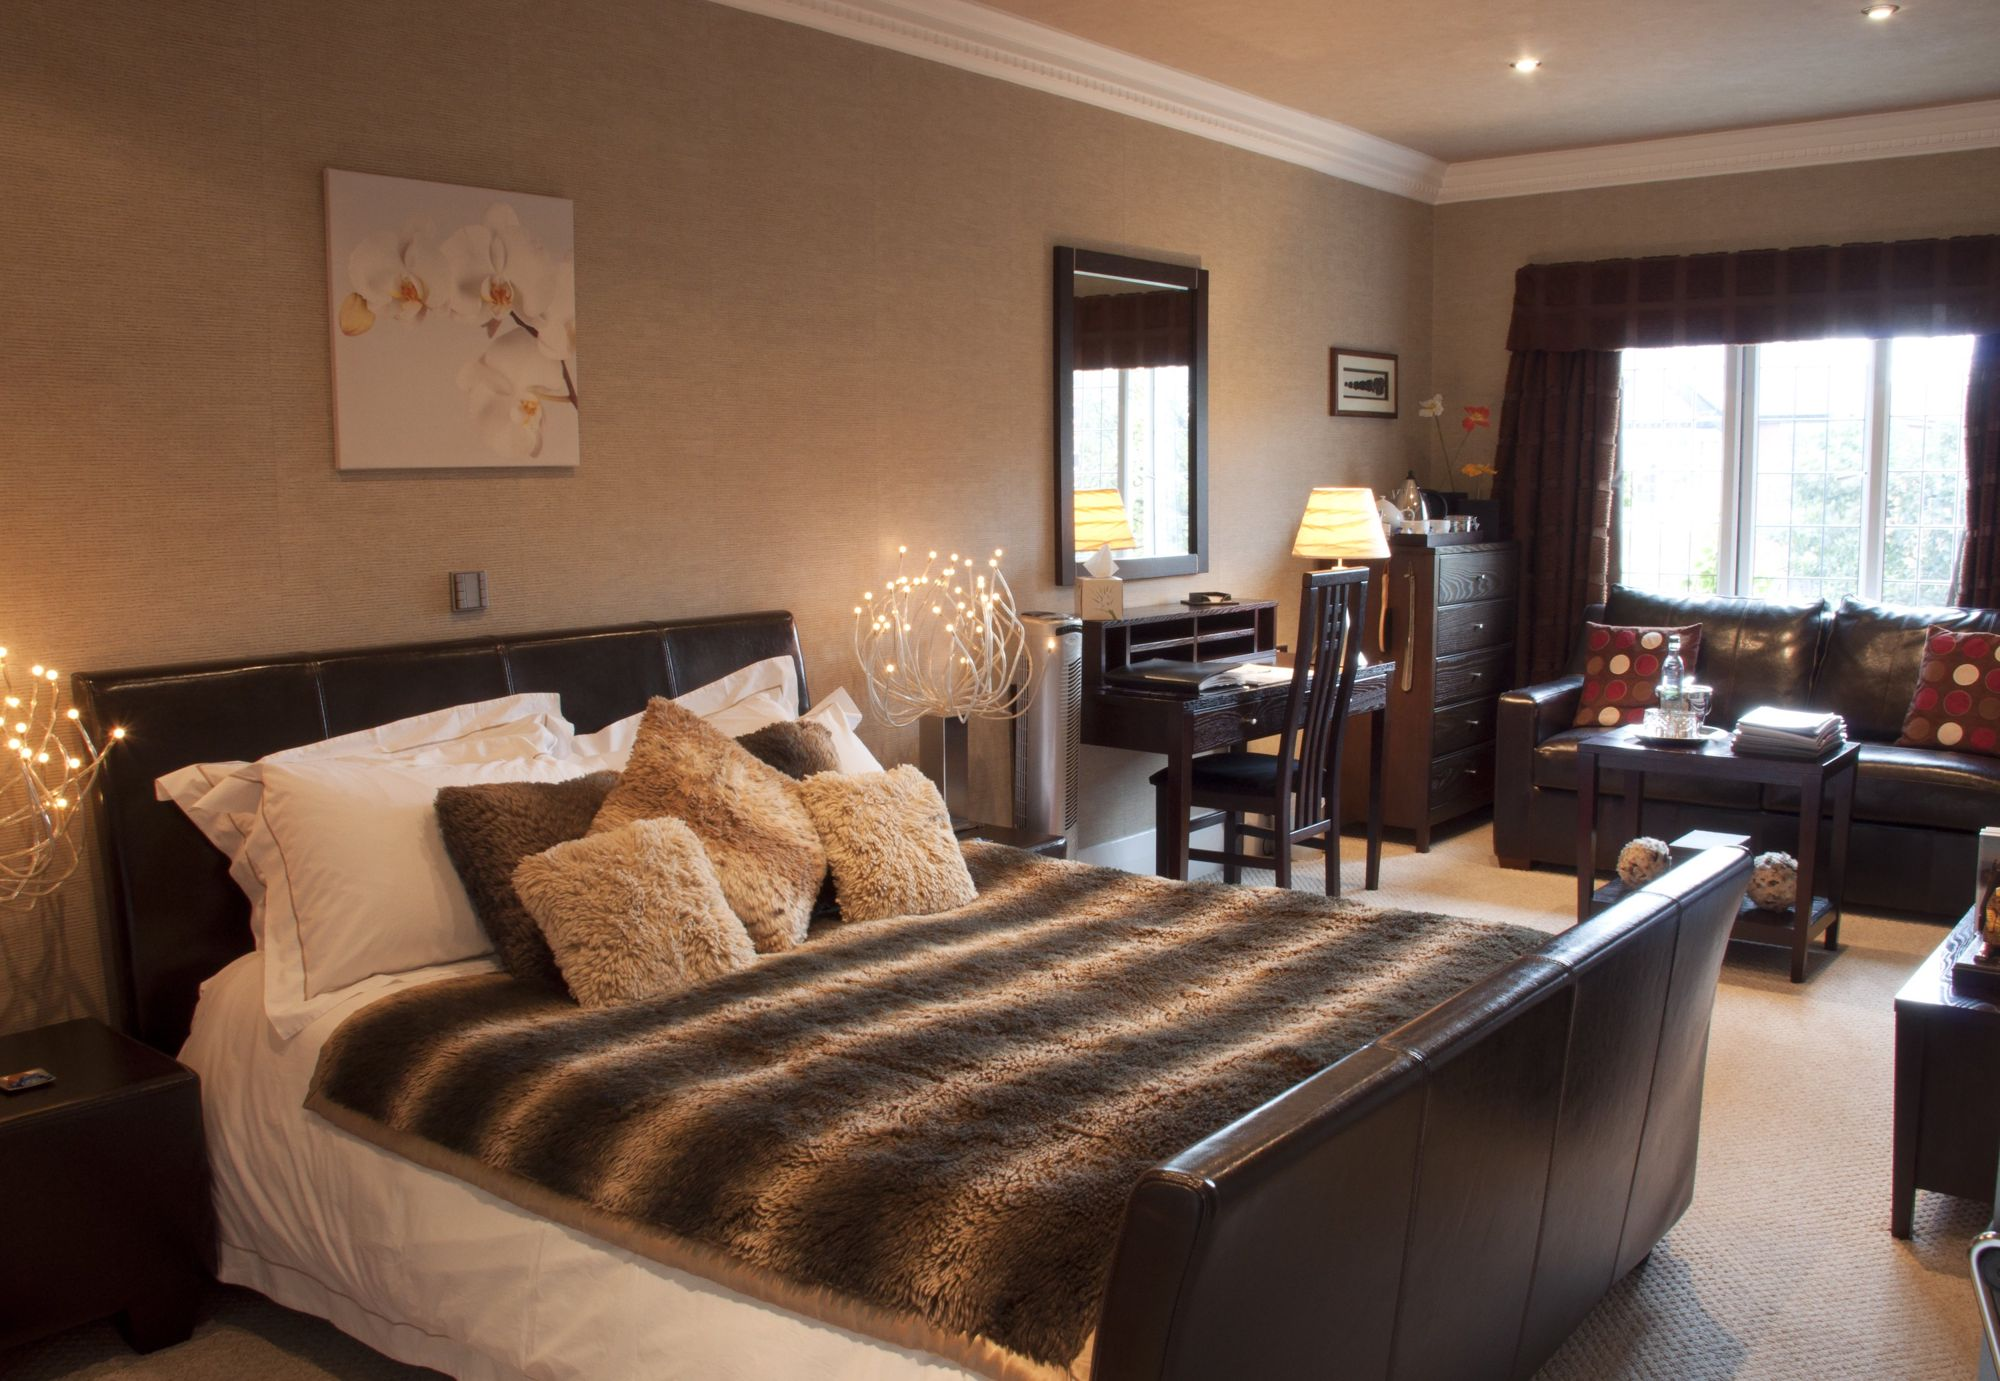 B&Bs in Blackpool holidays at Cool Places